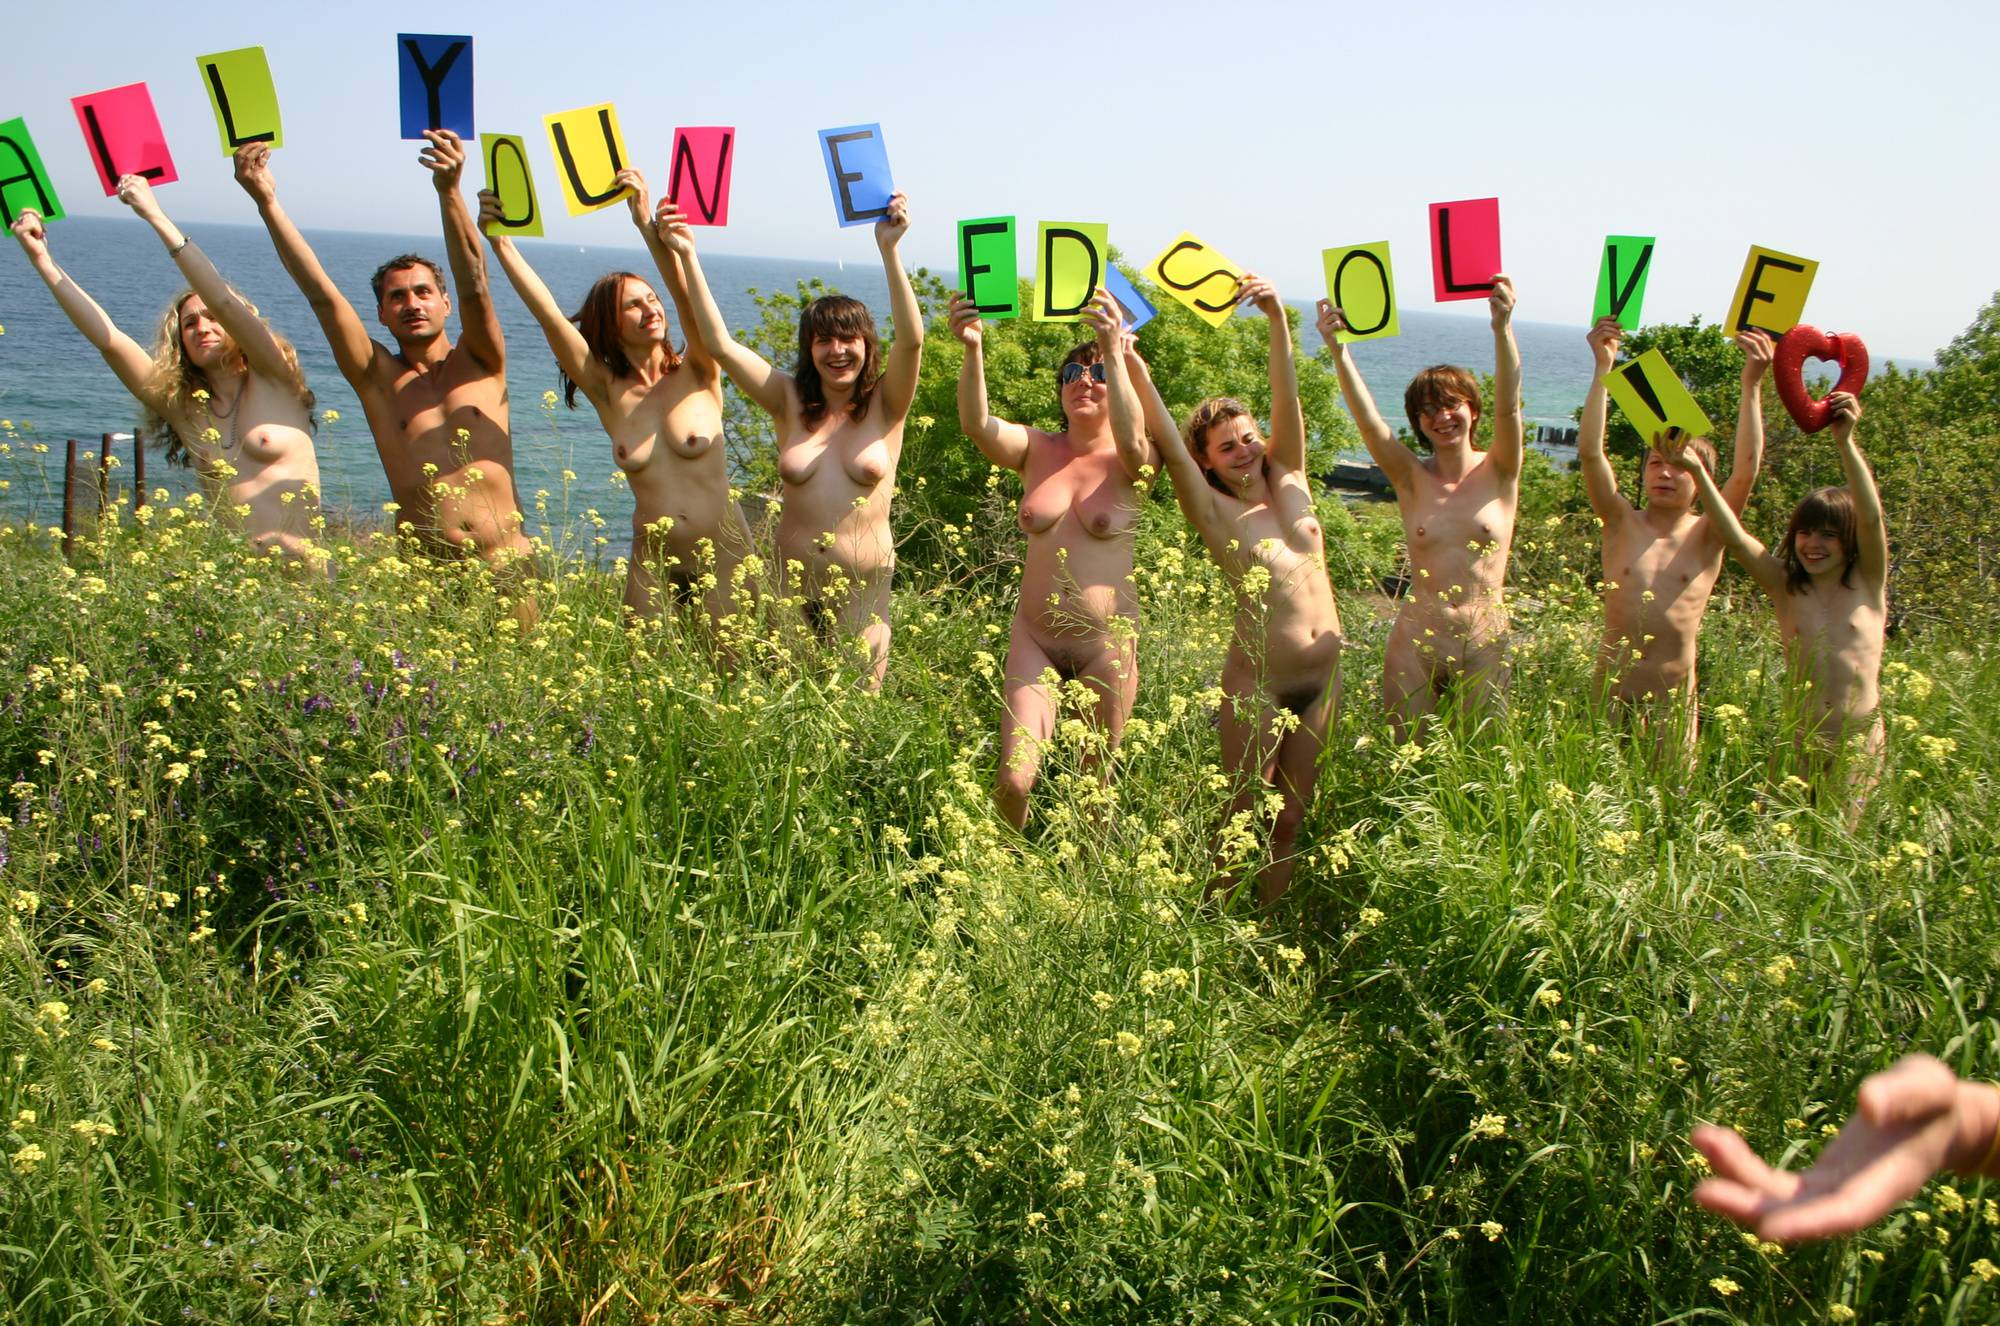 Colored Naturist Letters - 1